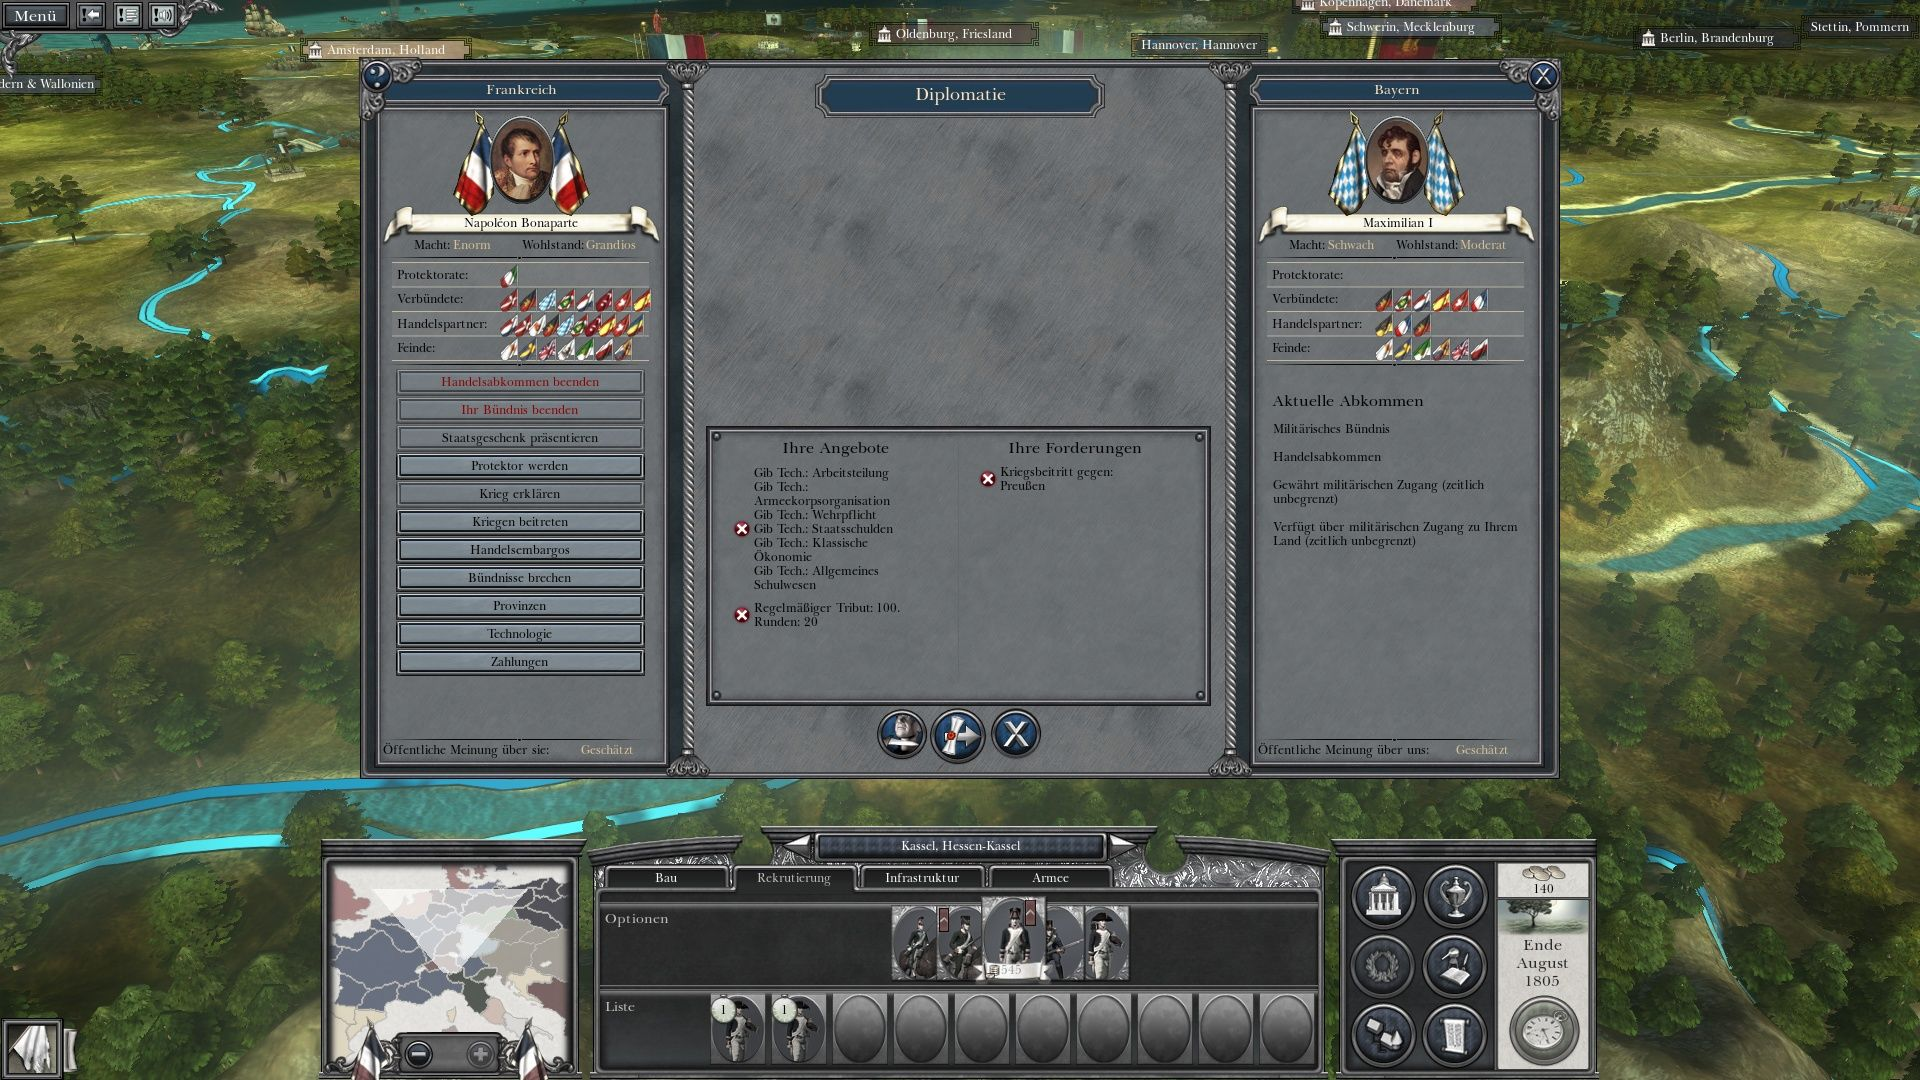 how to get napoleon total war for free